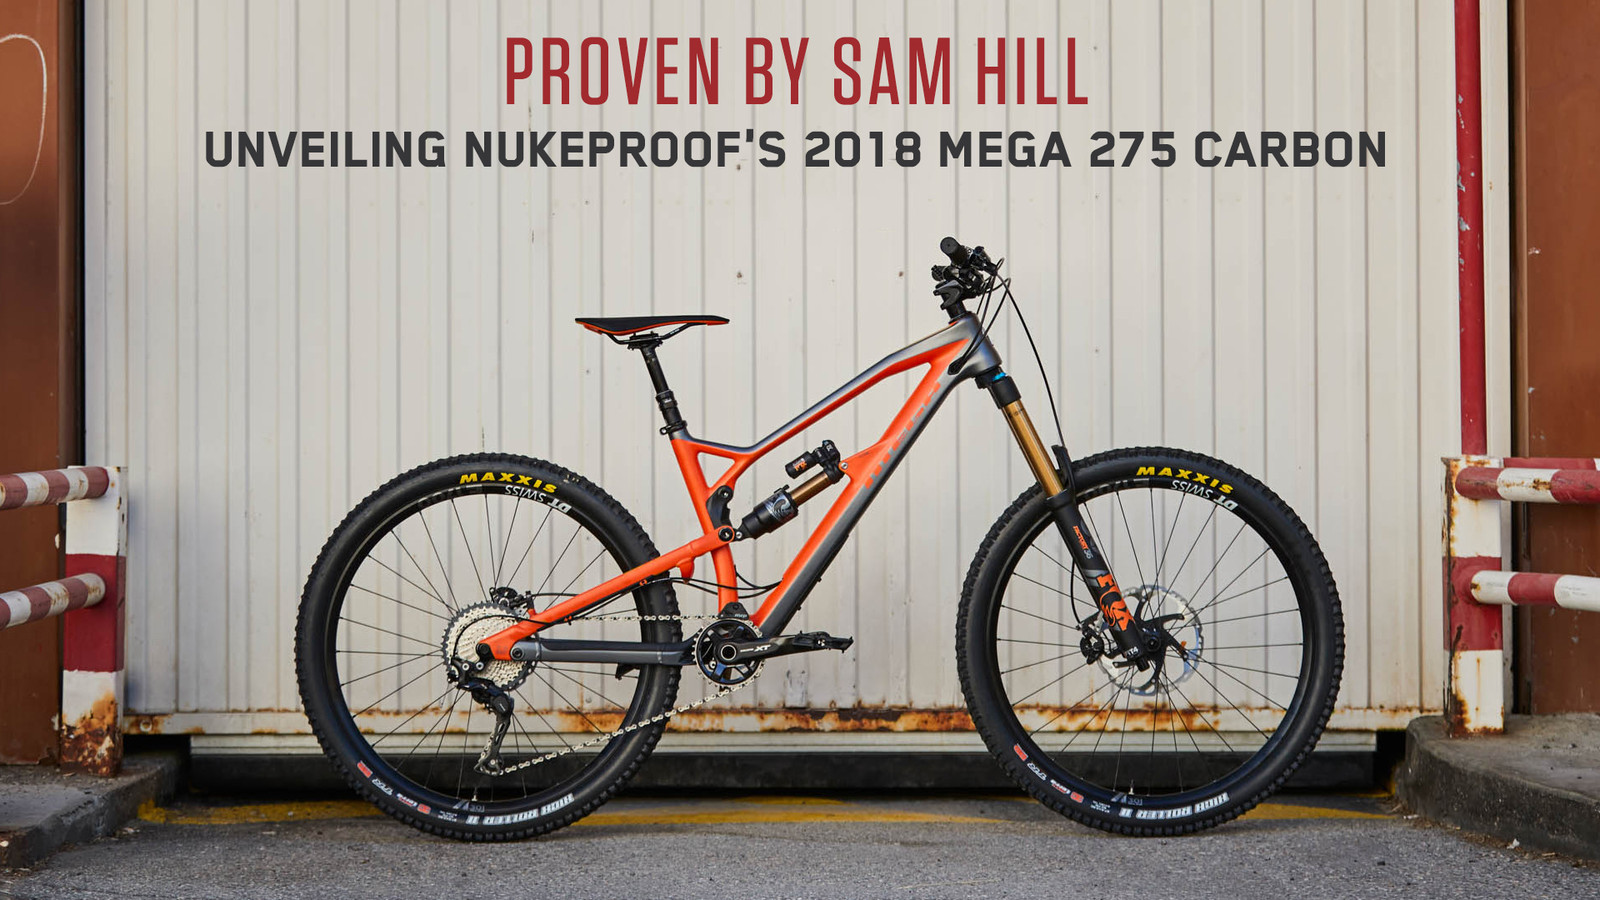 Proven by Sam Hill: Unveiling Nukeproof's 2018 Mega 275 Carbon